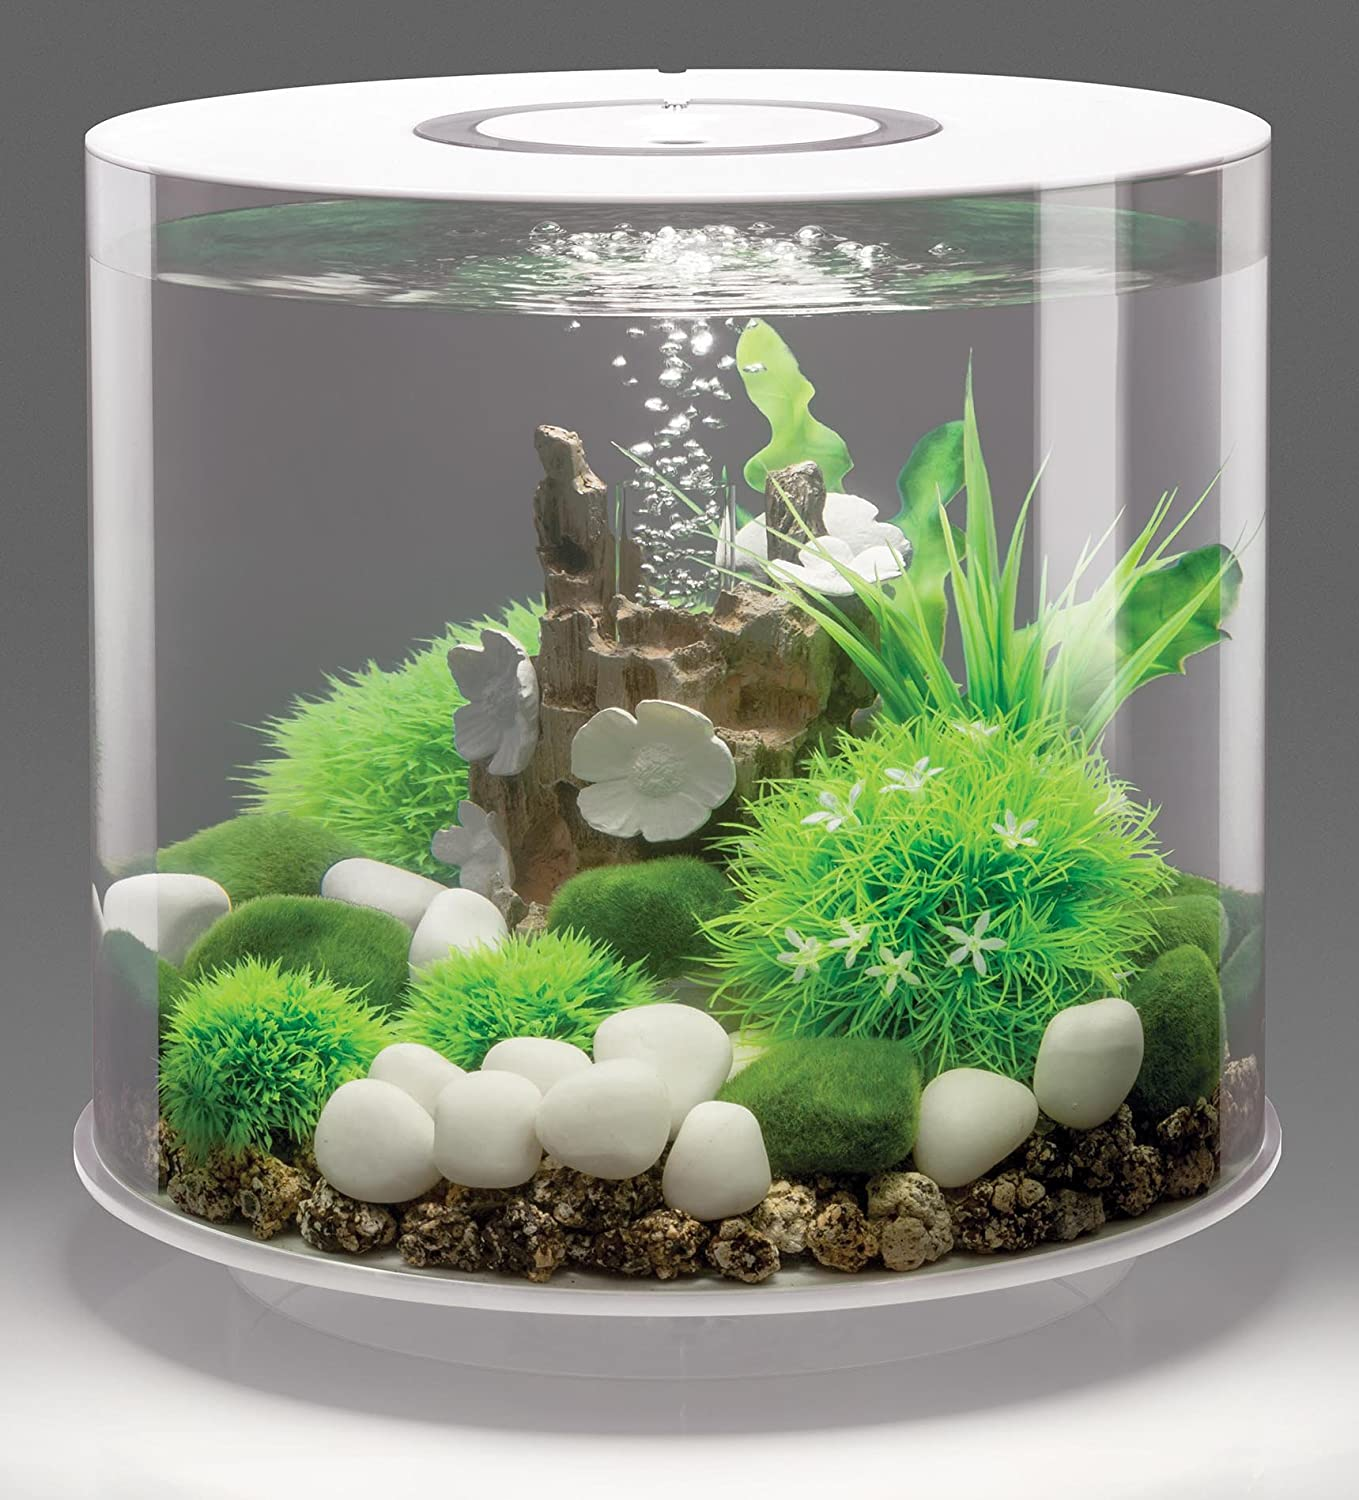 biorb tube wei led beleuchtetes aquarium 15l jetzt kaufen. Black Bedroom Furniture Sets. Home Design Ideas